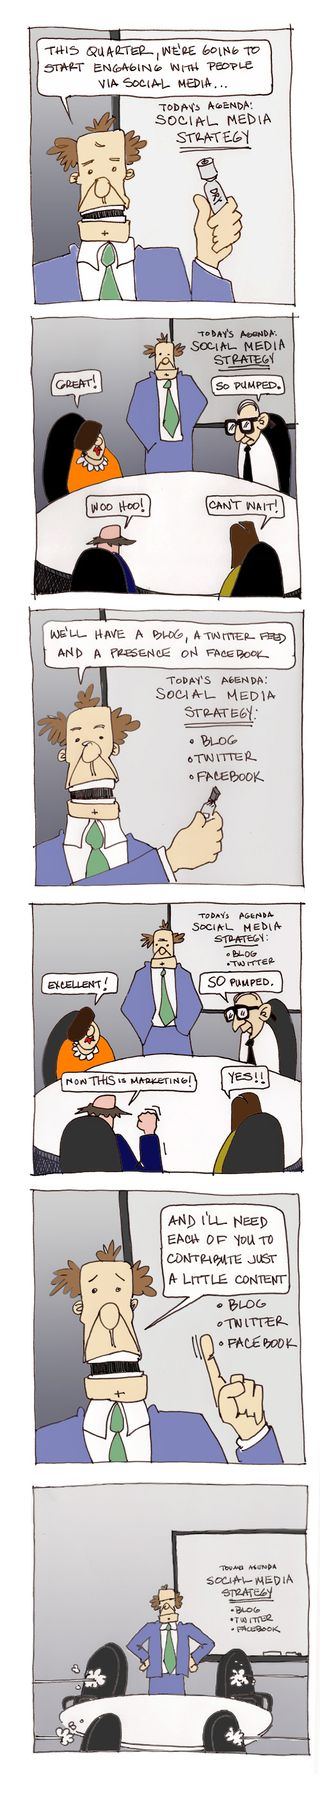 Eloqua-Steve-Woods-Social-Media-Content-Cartoon[1]